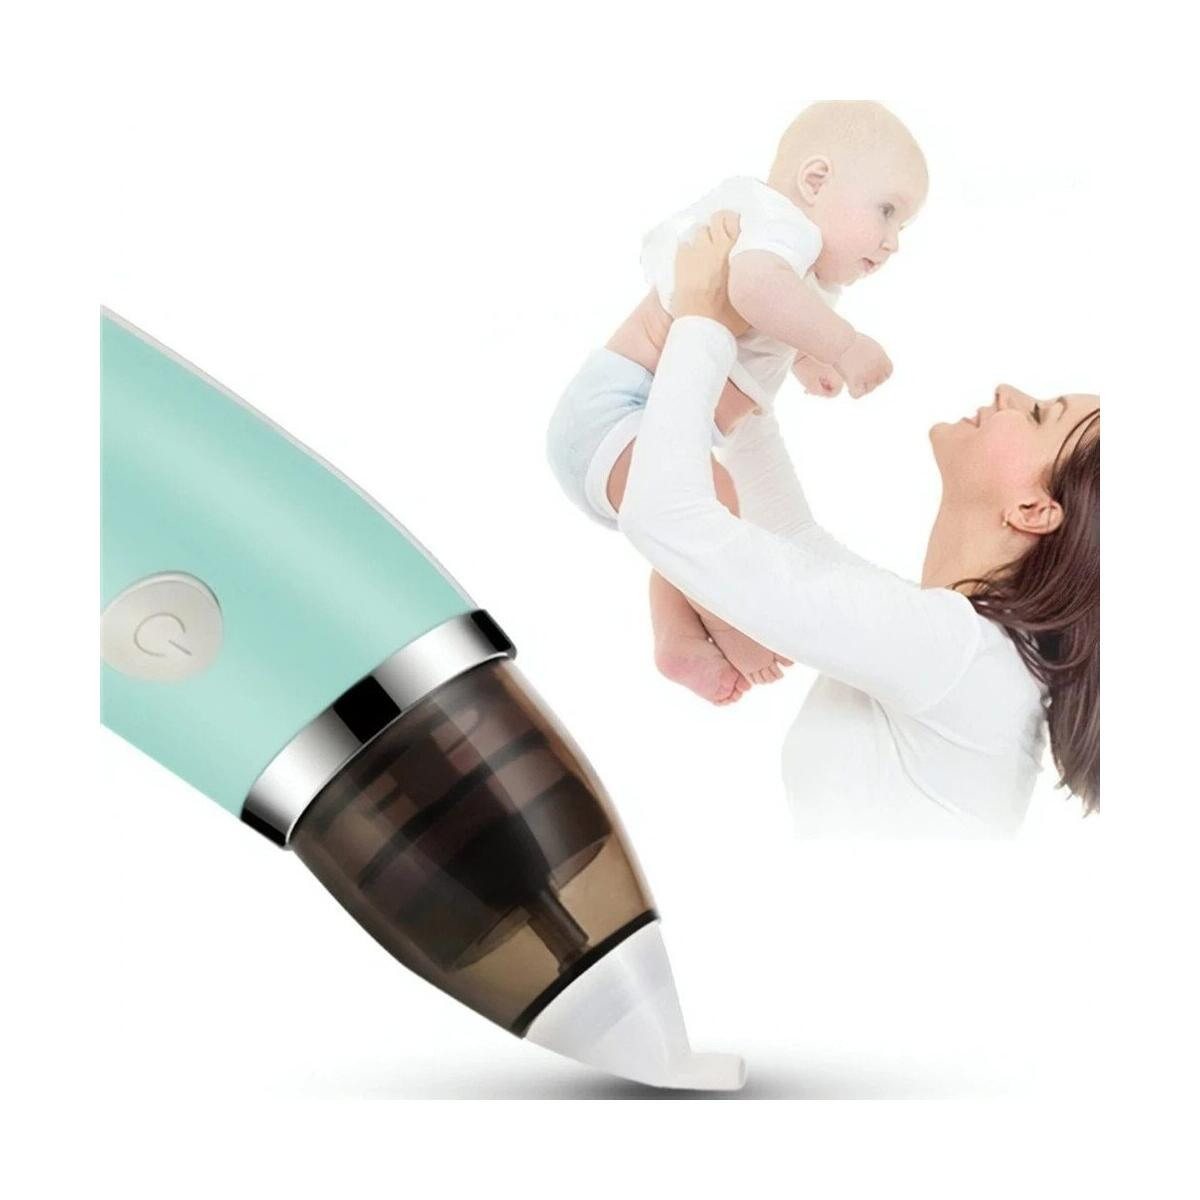 Baby Nasal Aspirator Toddler Safe Nose Suction and Gently Clears Infant's Mucus. Battery Operated with 3 Sizes of Silicone Tips and Manual Snot Booger Sucker and Remover for Newborns